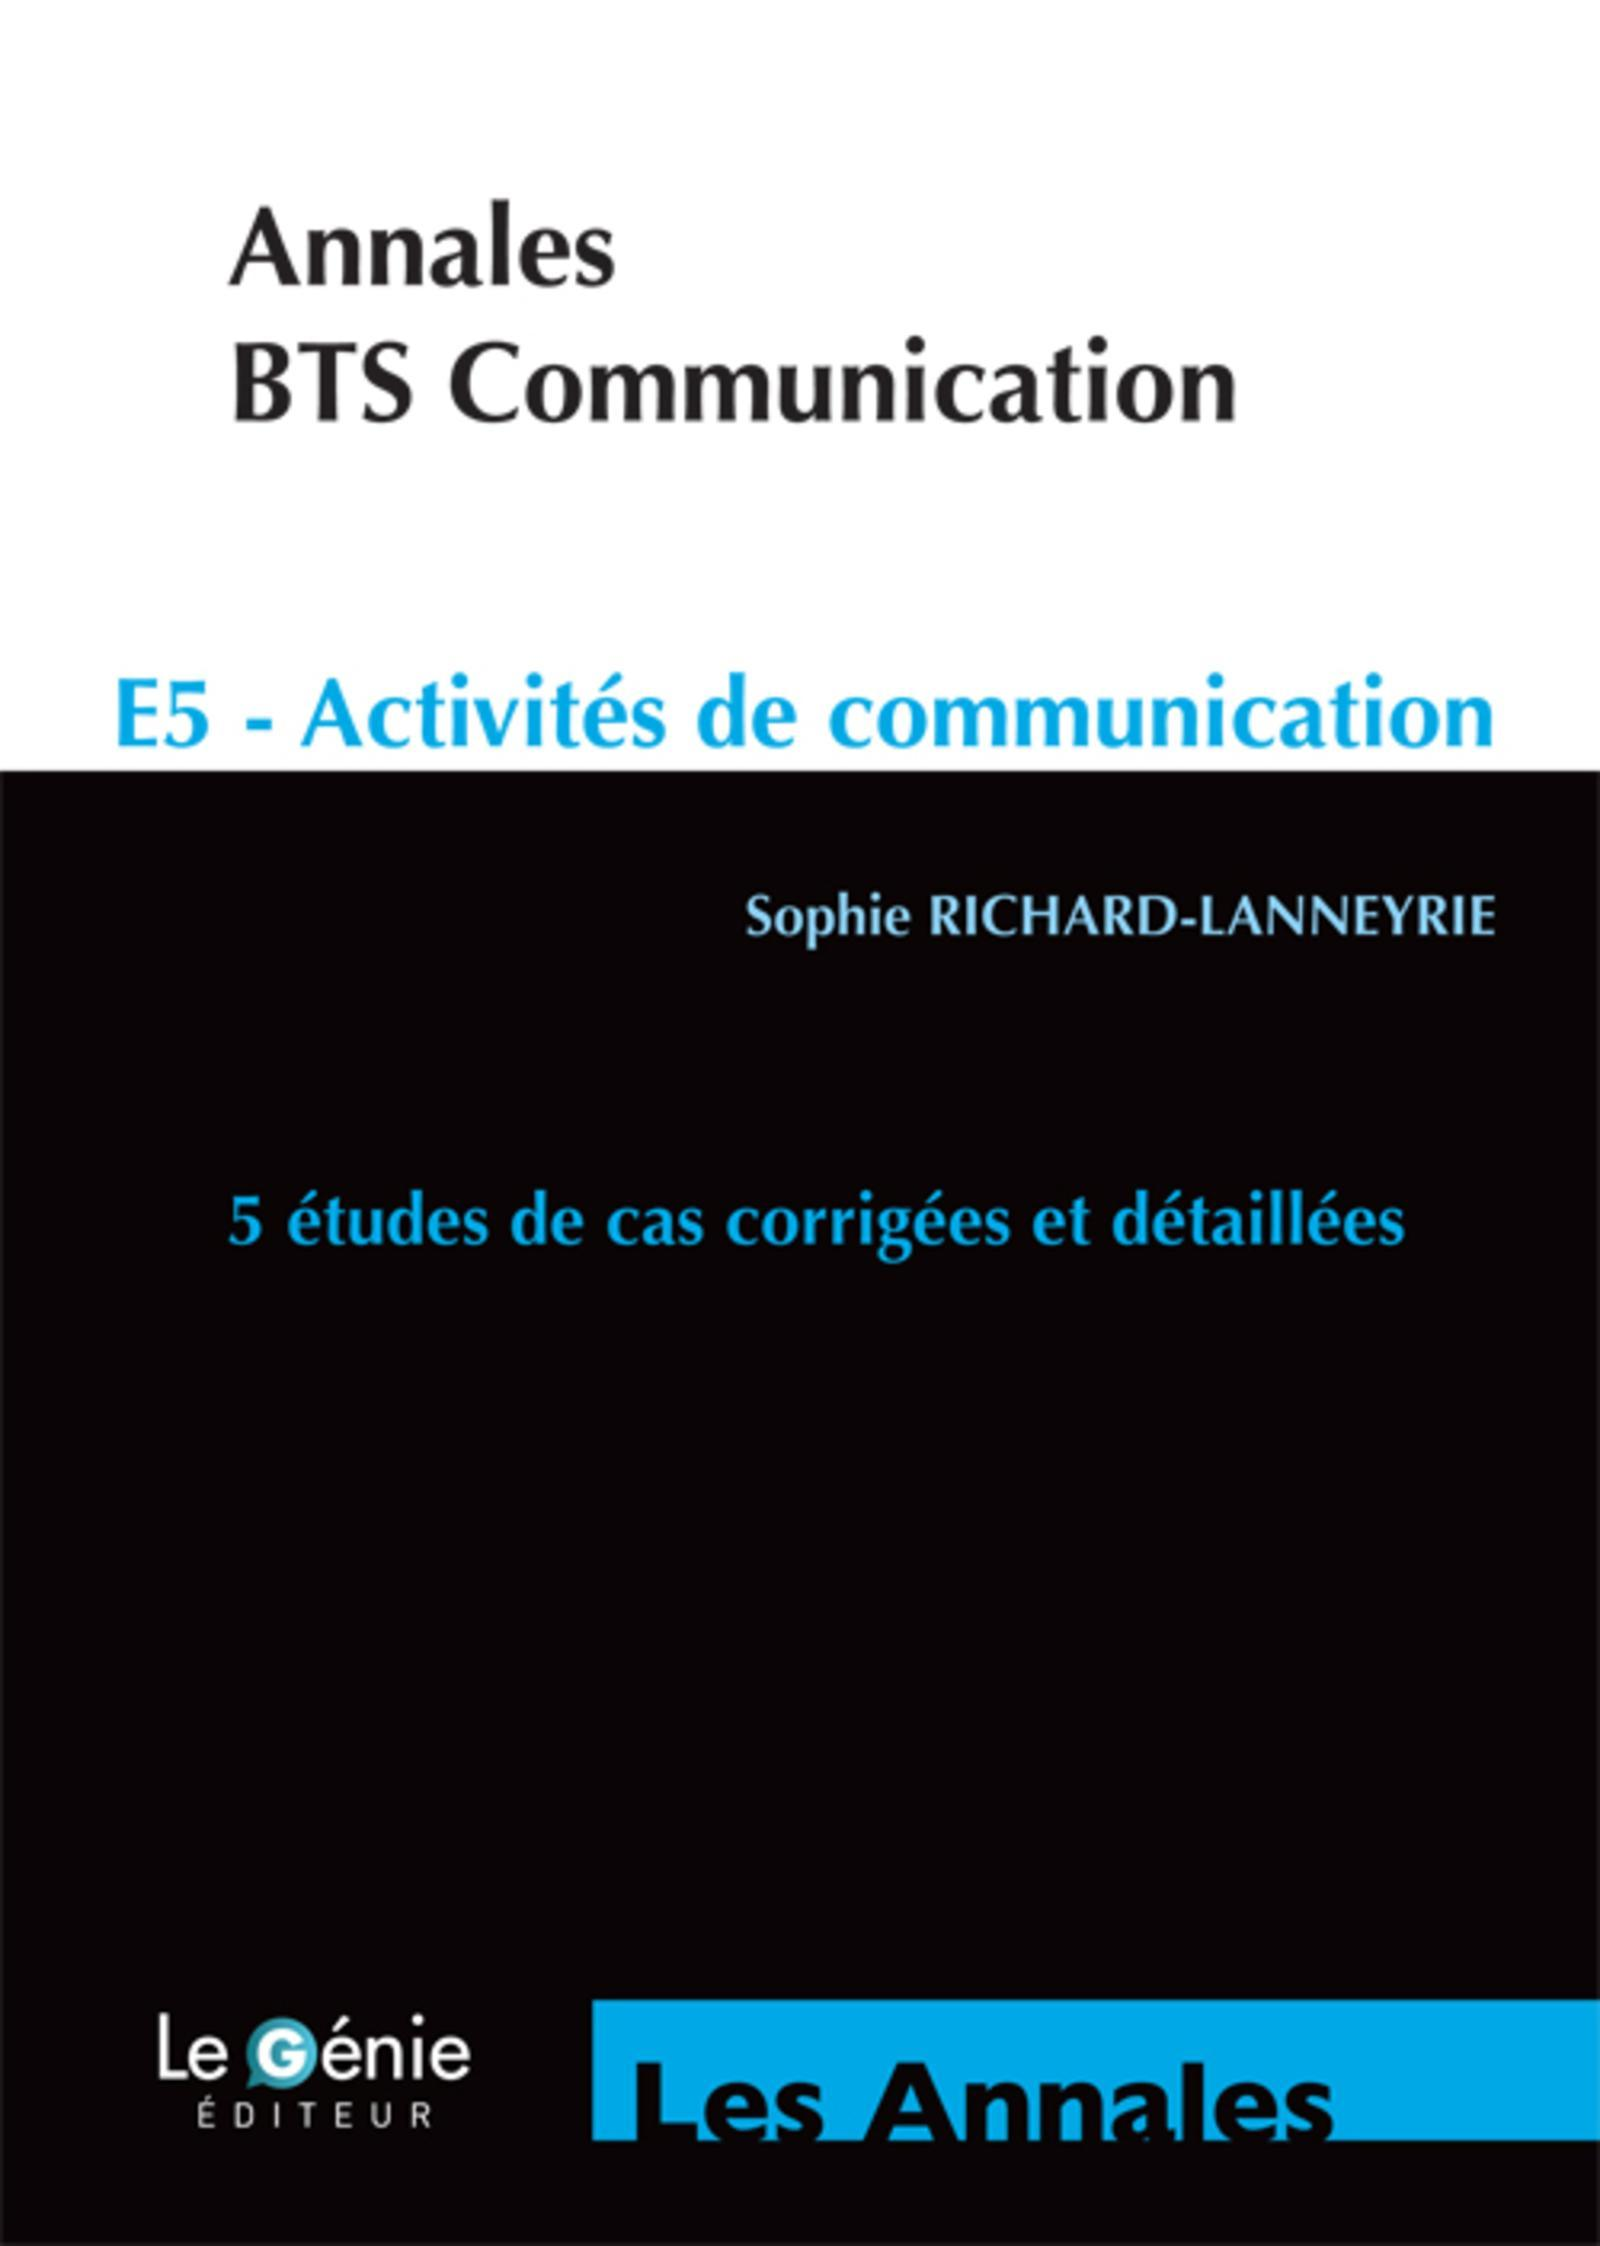 ANNALES BTS COMMUNICATION